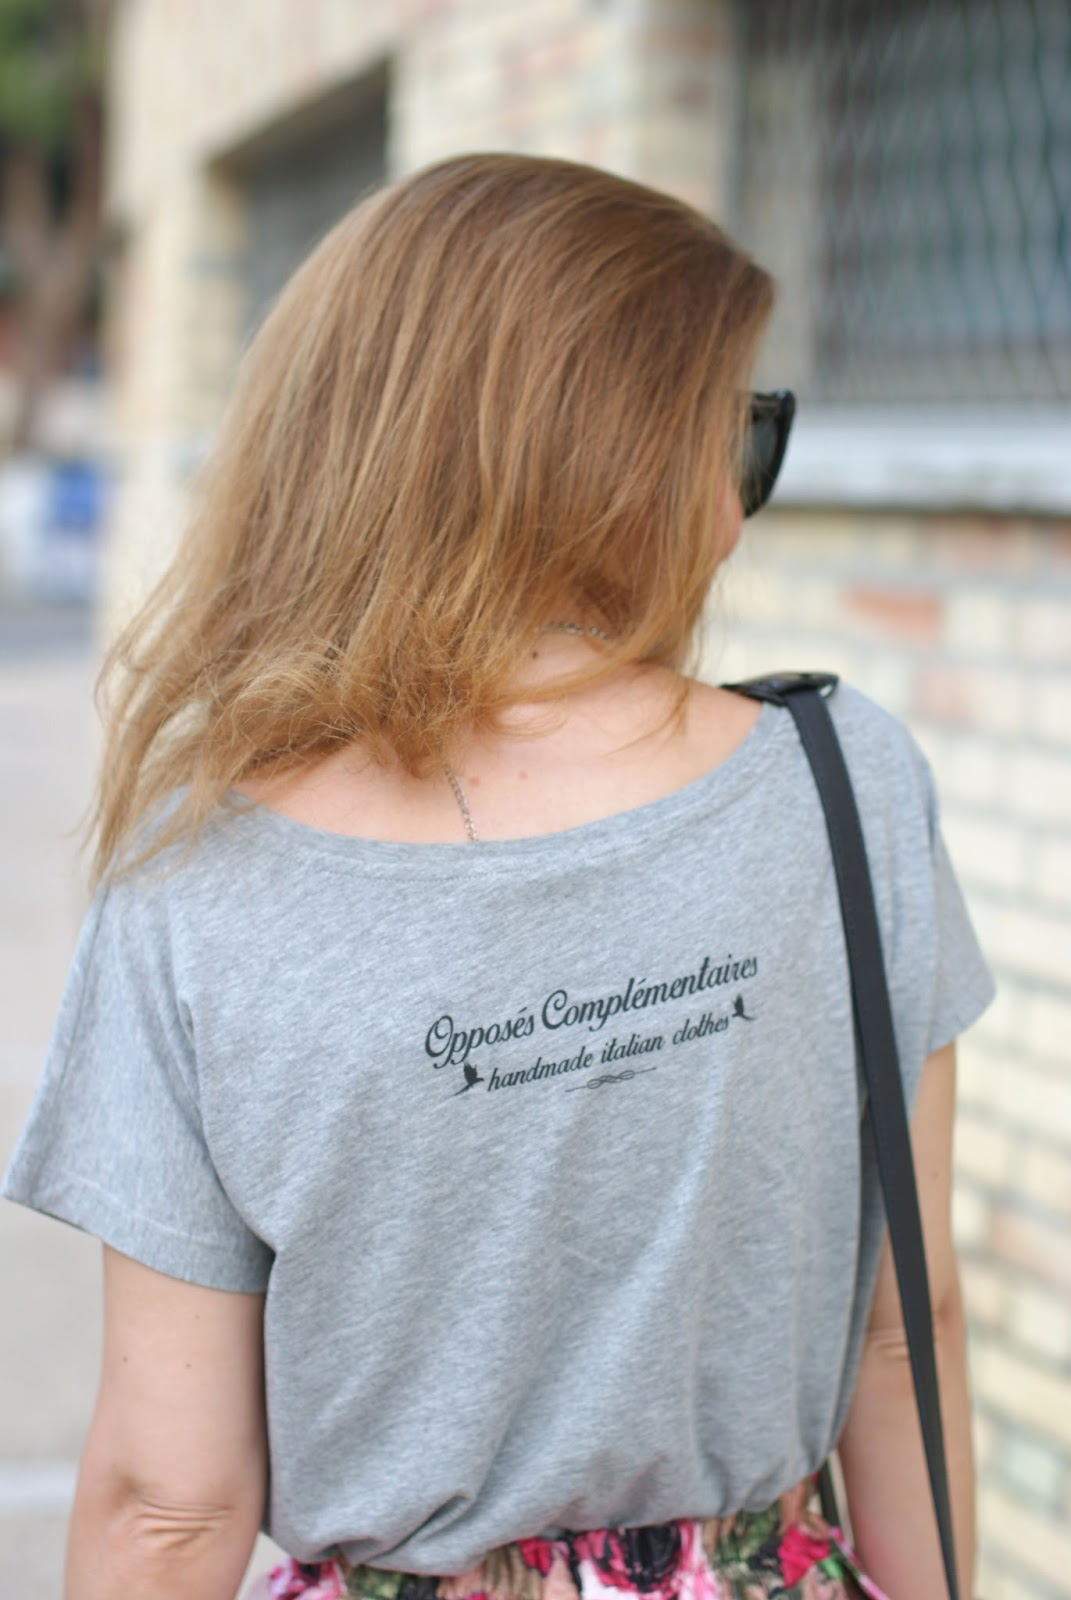 Opposes Complementaires t-shirt su Fashion and Cookies fashion blog, fashion blogger style